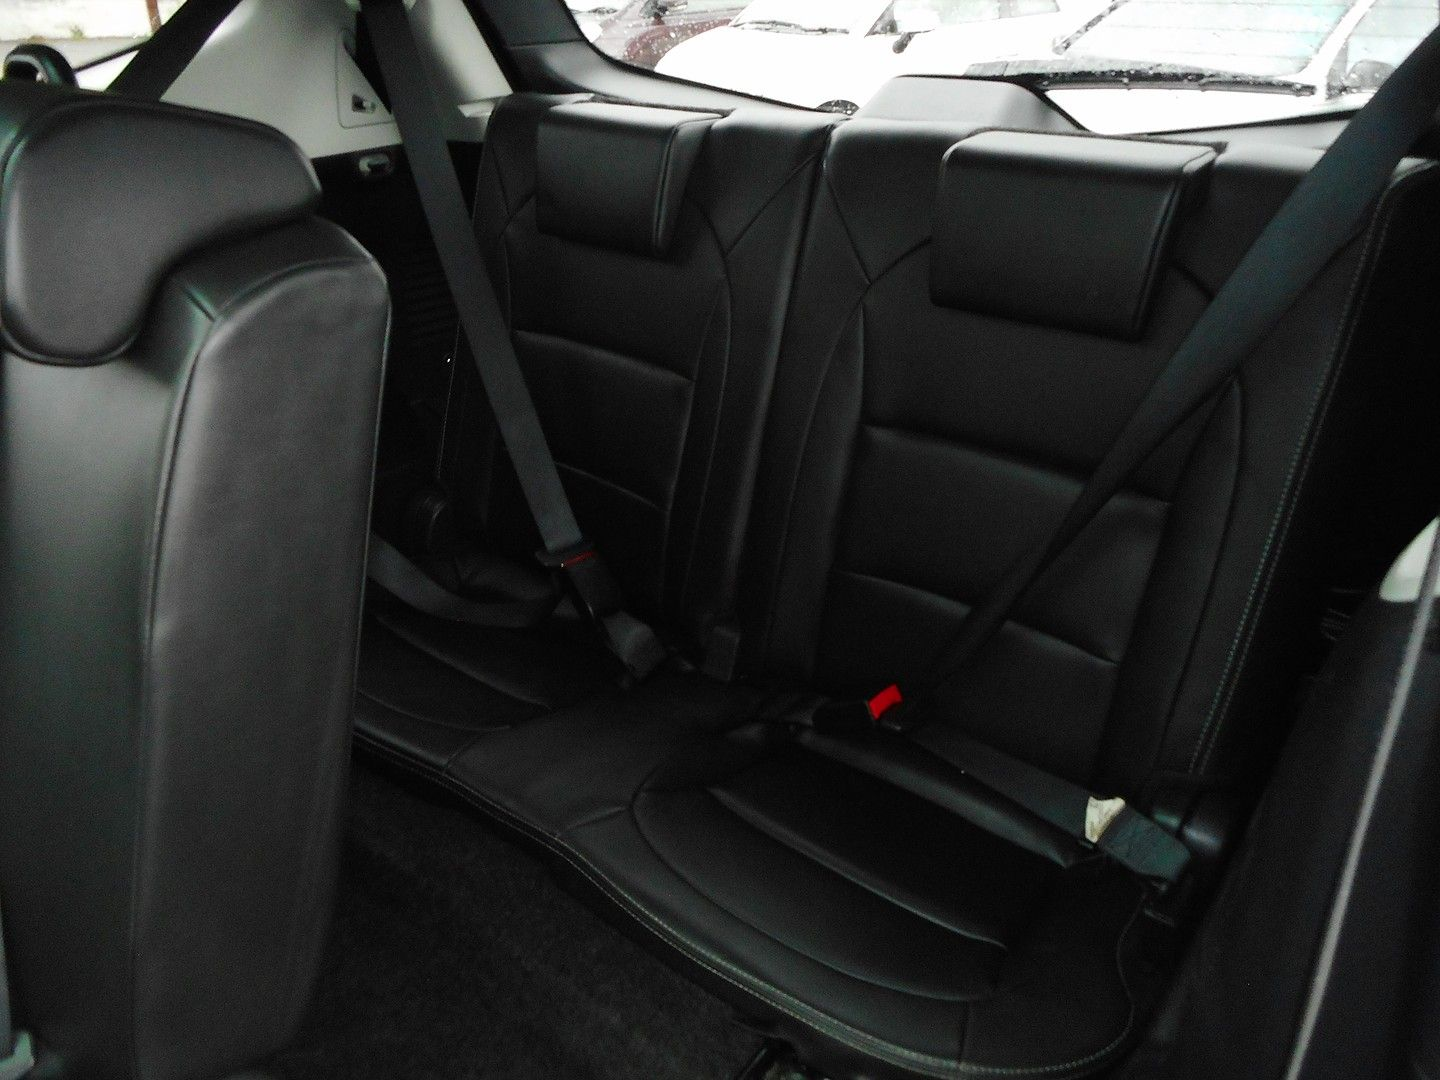 NISSAN QASHQAI 360 1.5 dCi 7 SEATER (2013) - Picture 7